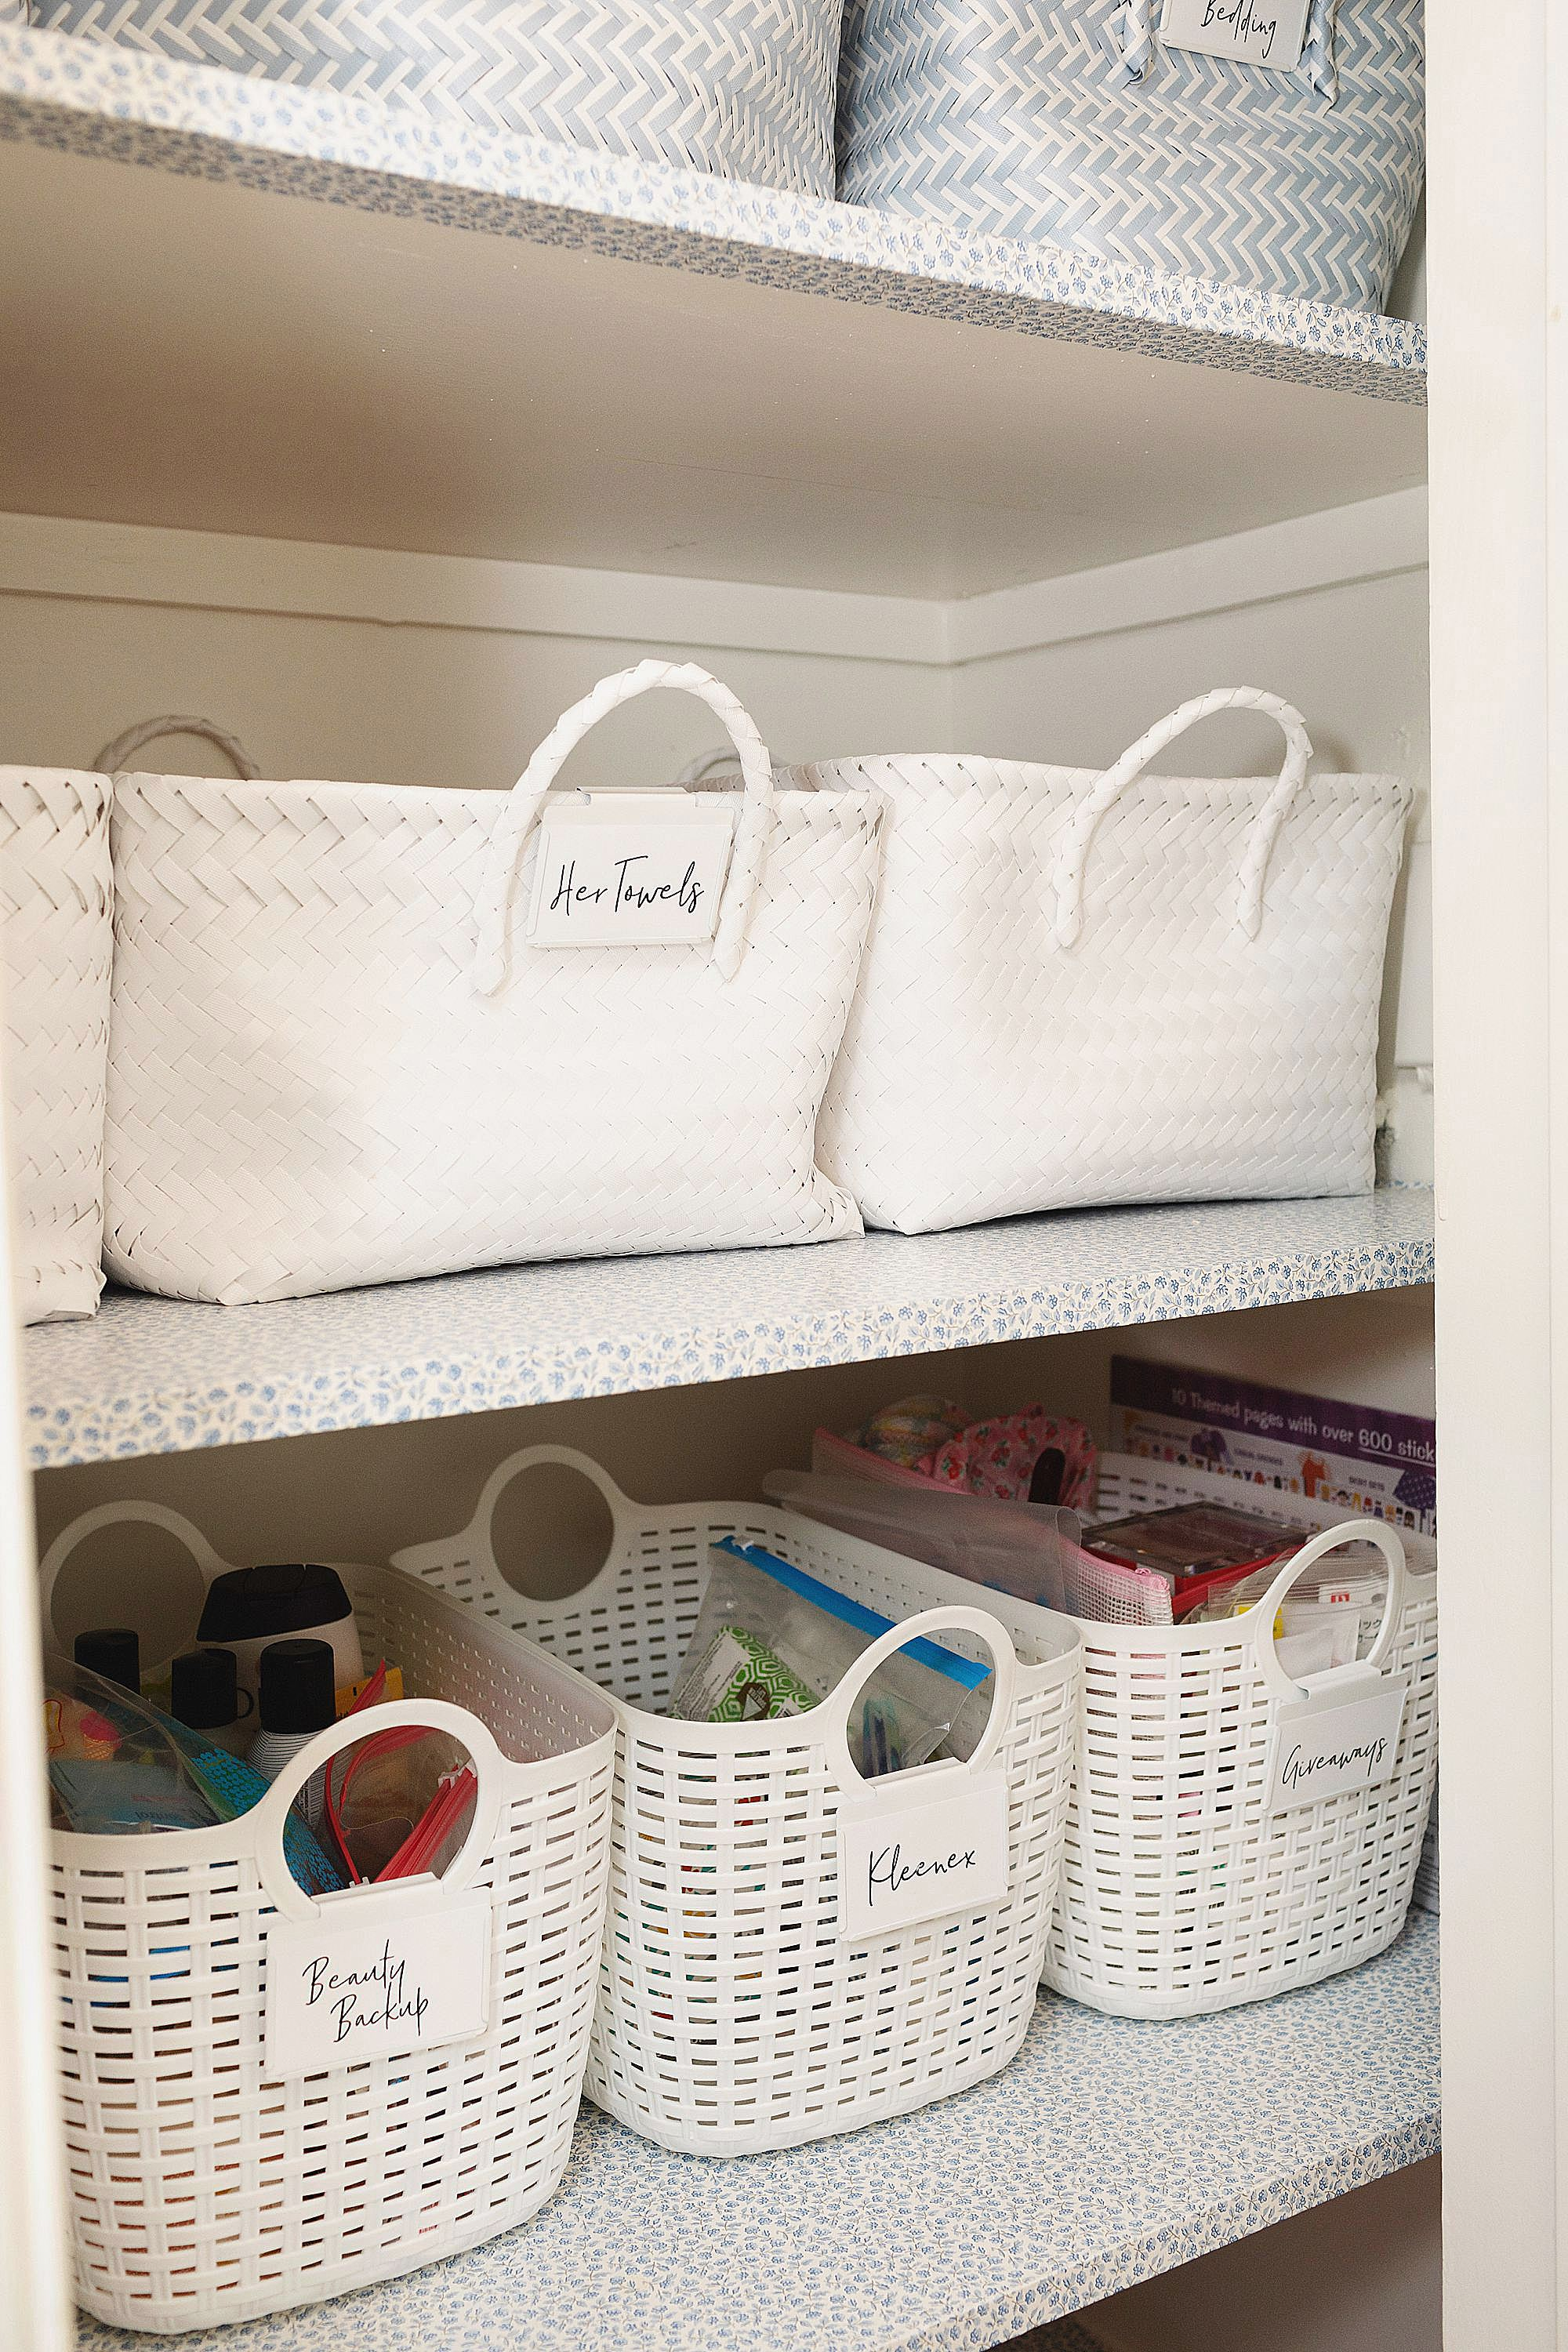 white baskets linen closet